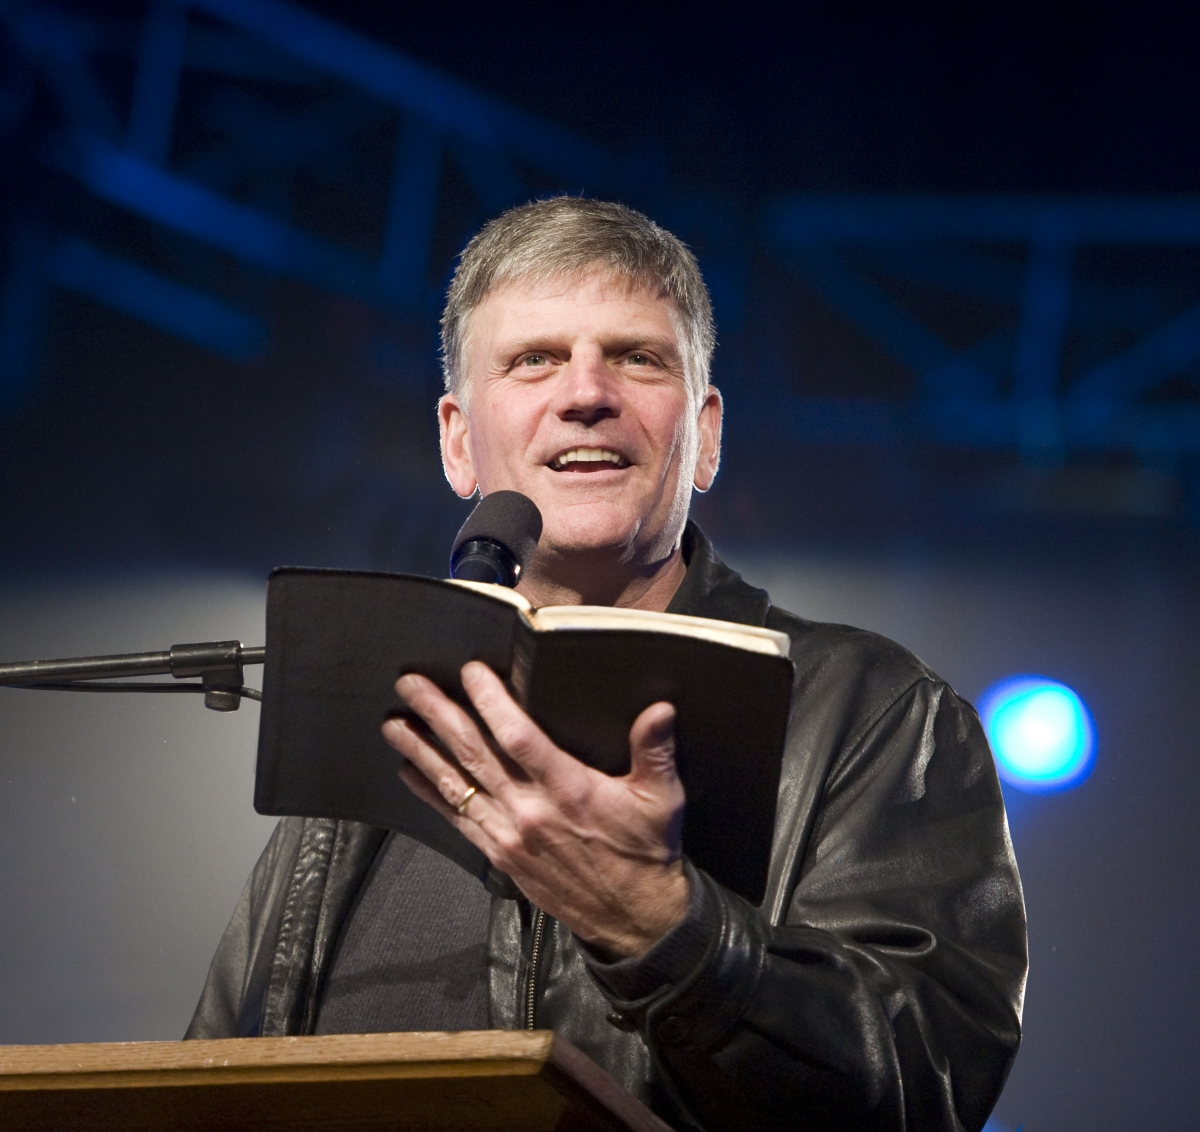 Franklin Graham stresses the importance of memorizing the